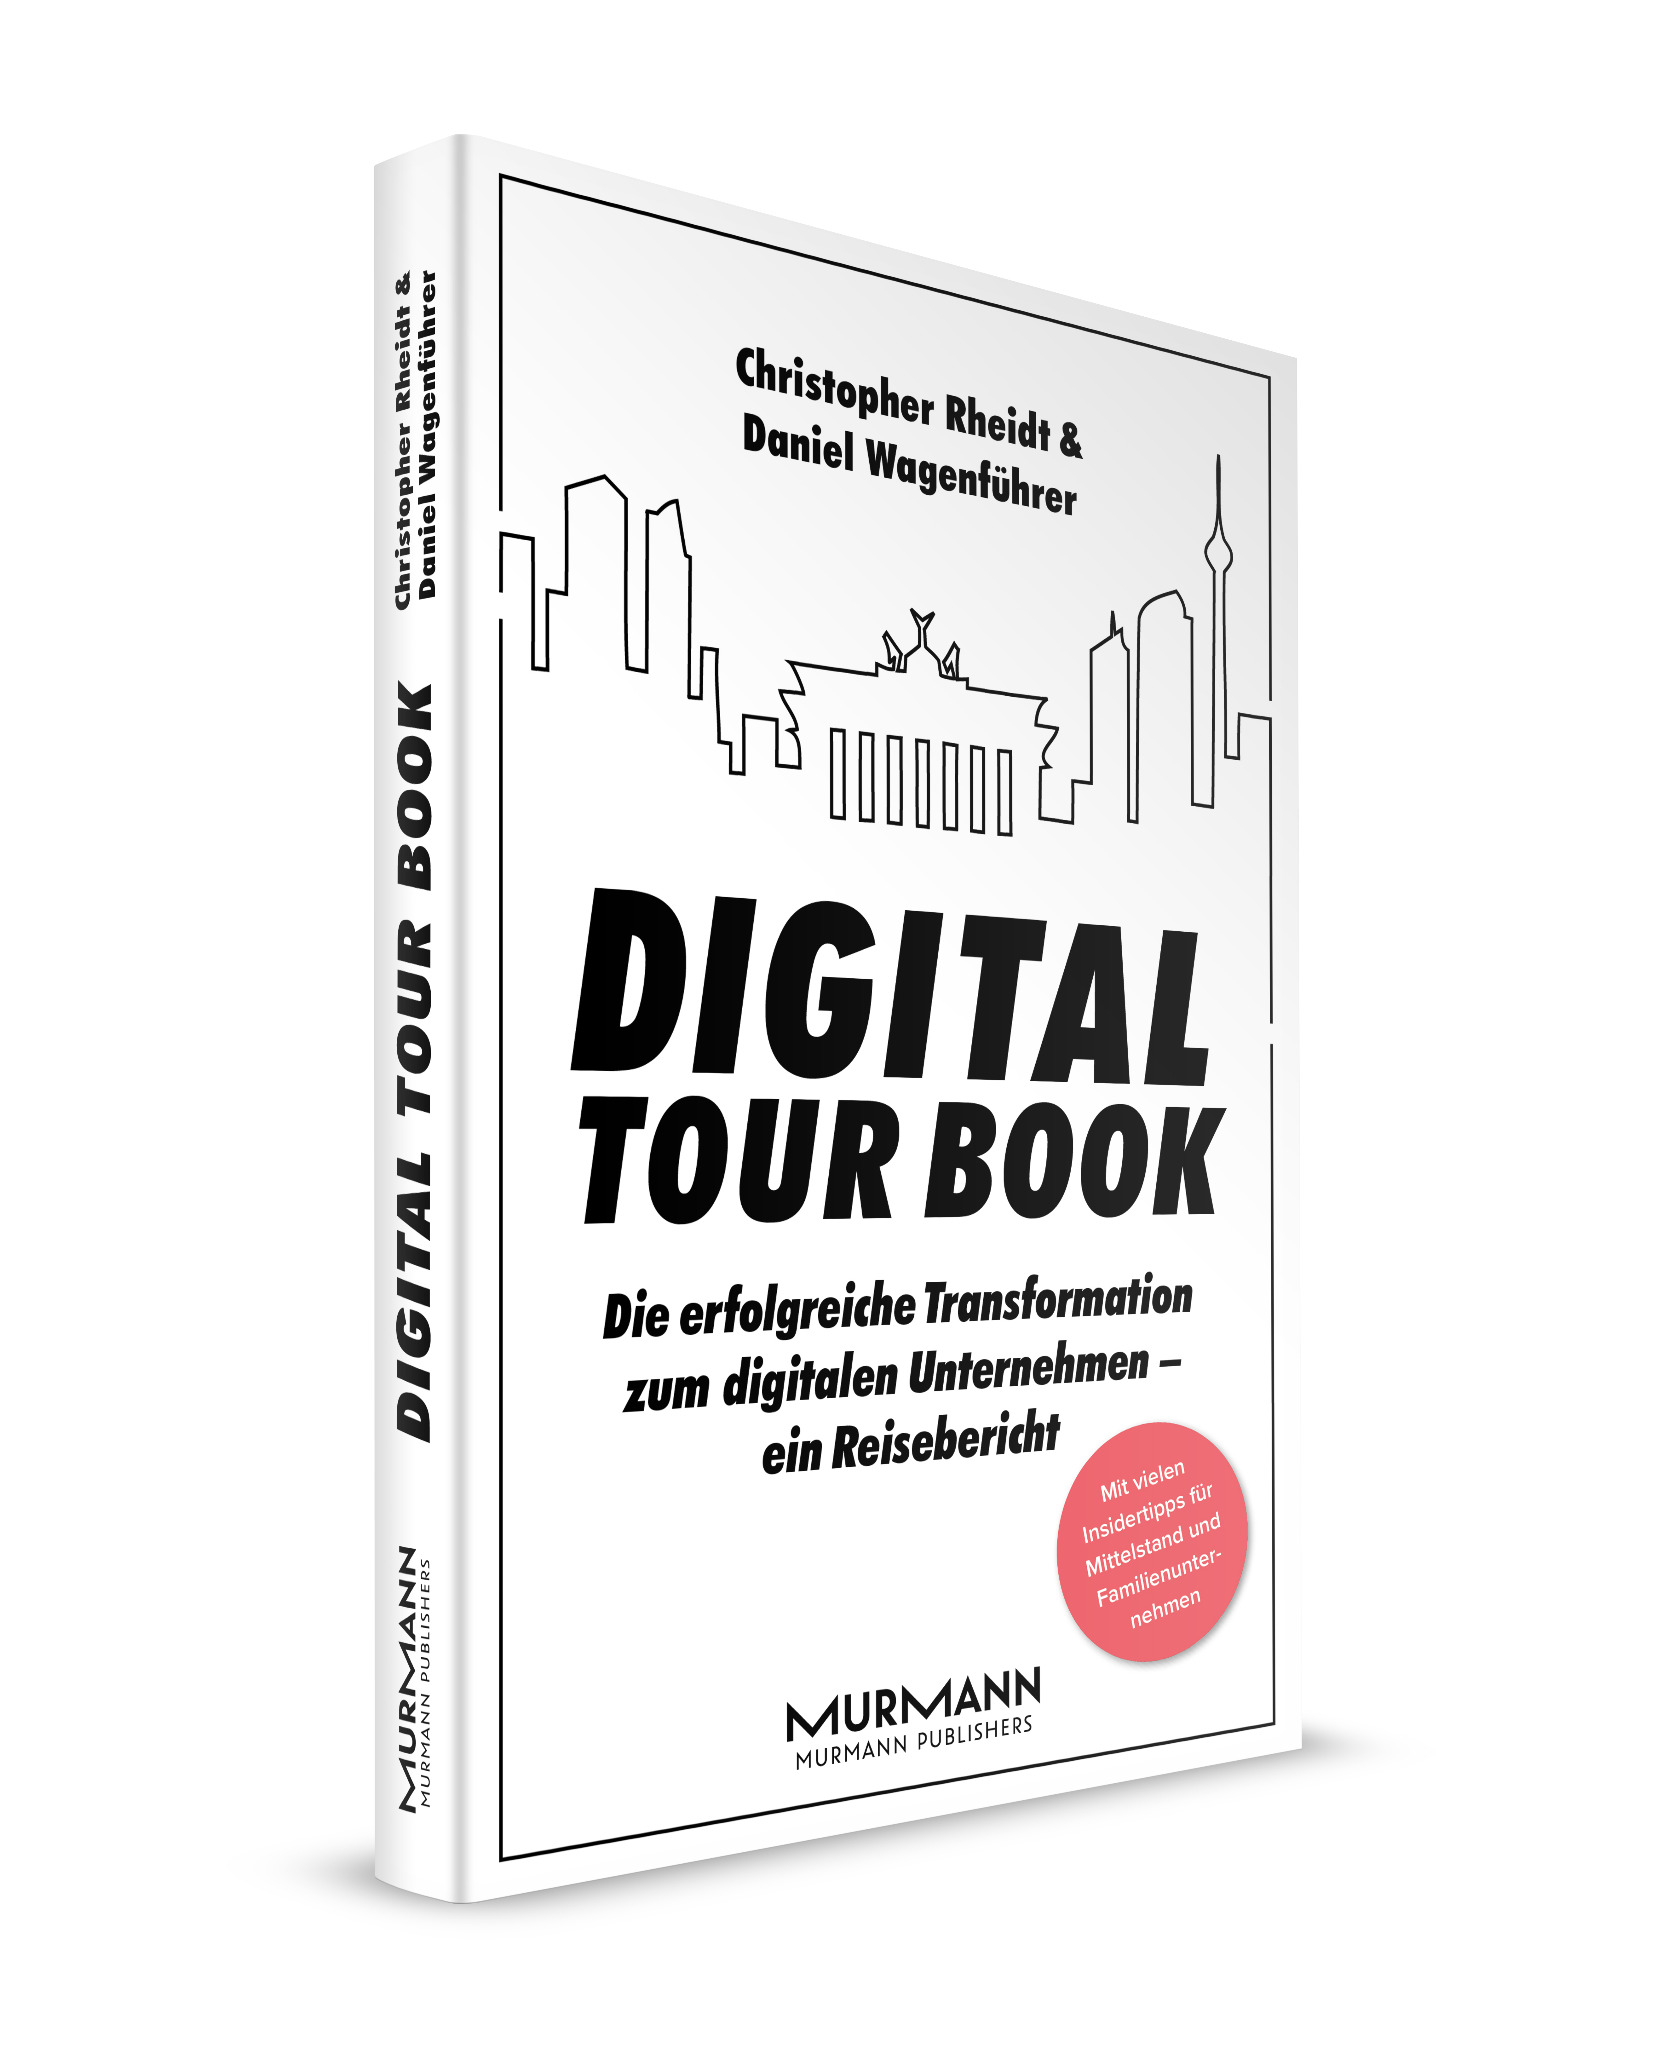 Digital Tour Book / Christopher Rheidt & Daniel Wagenführer (E-Book)